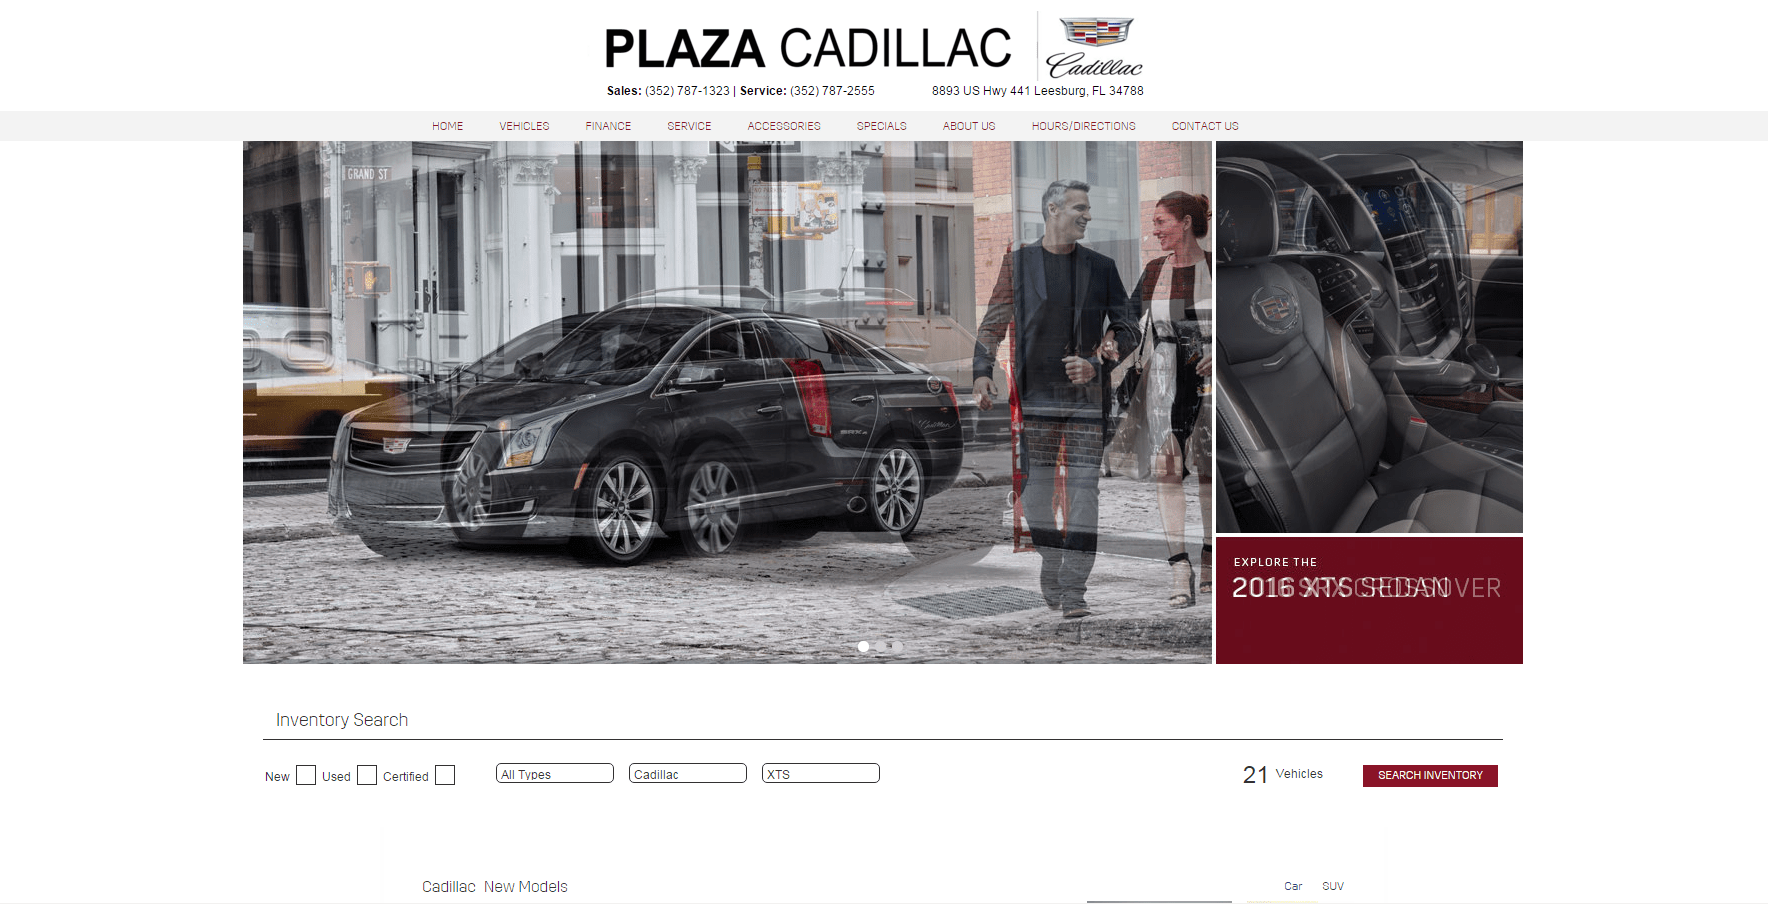 Plaza Cadillac (After) 1.1